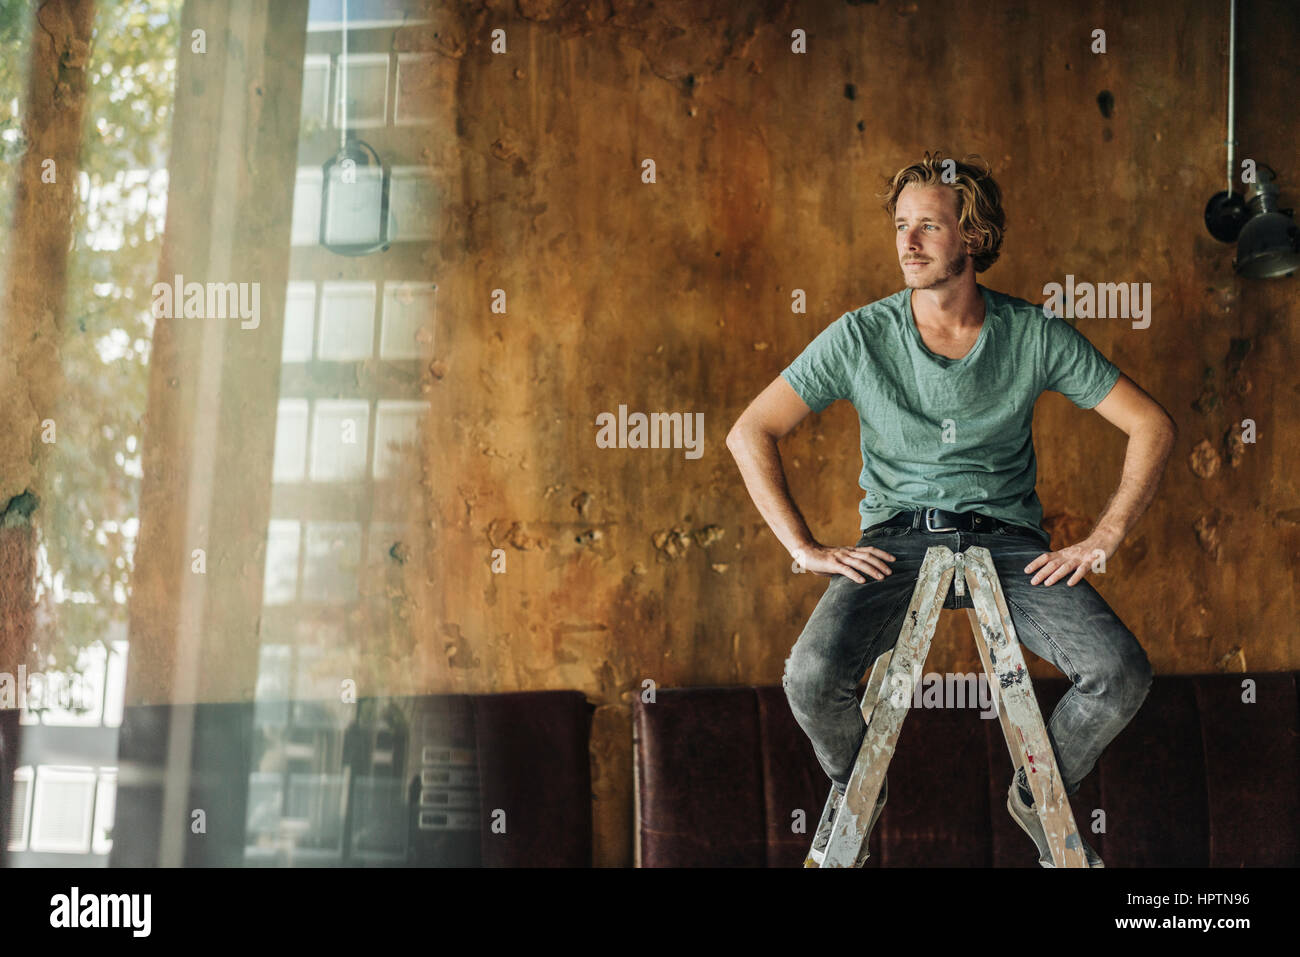 Man sitting on stepladder in unfinished room Stock Photo